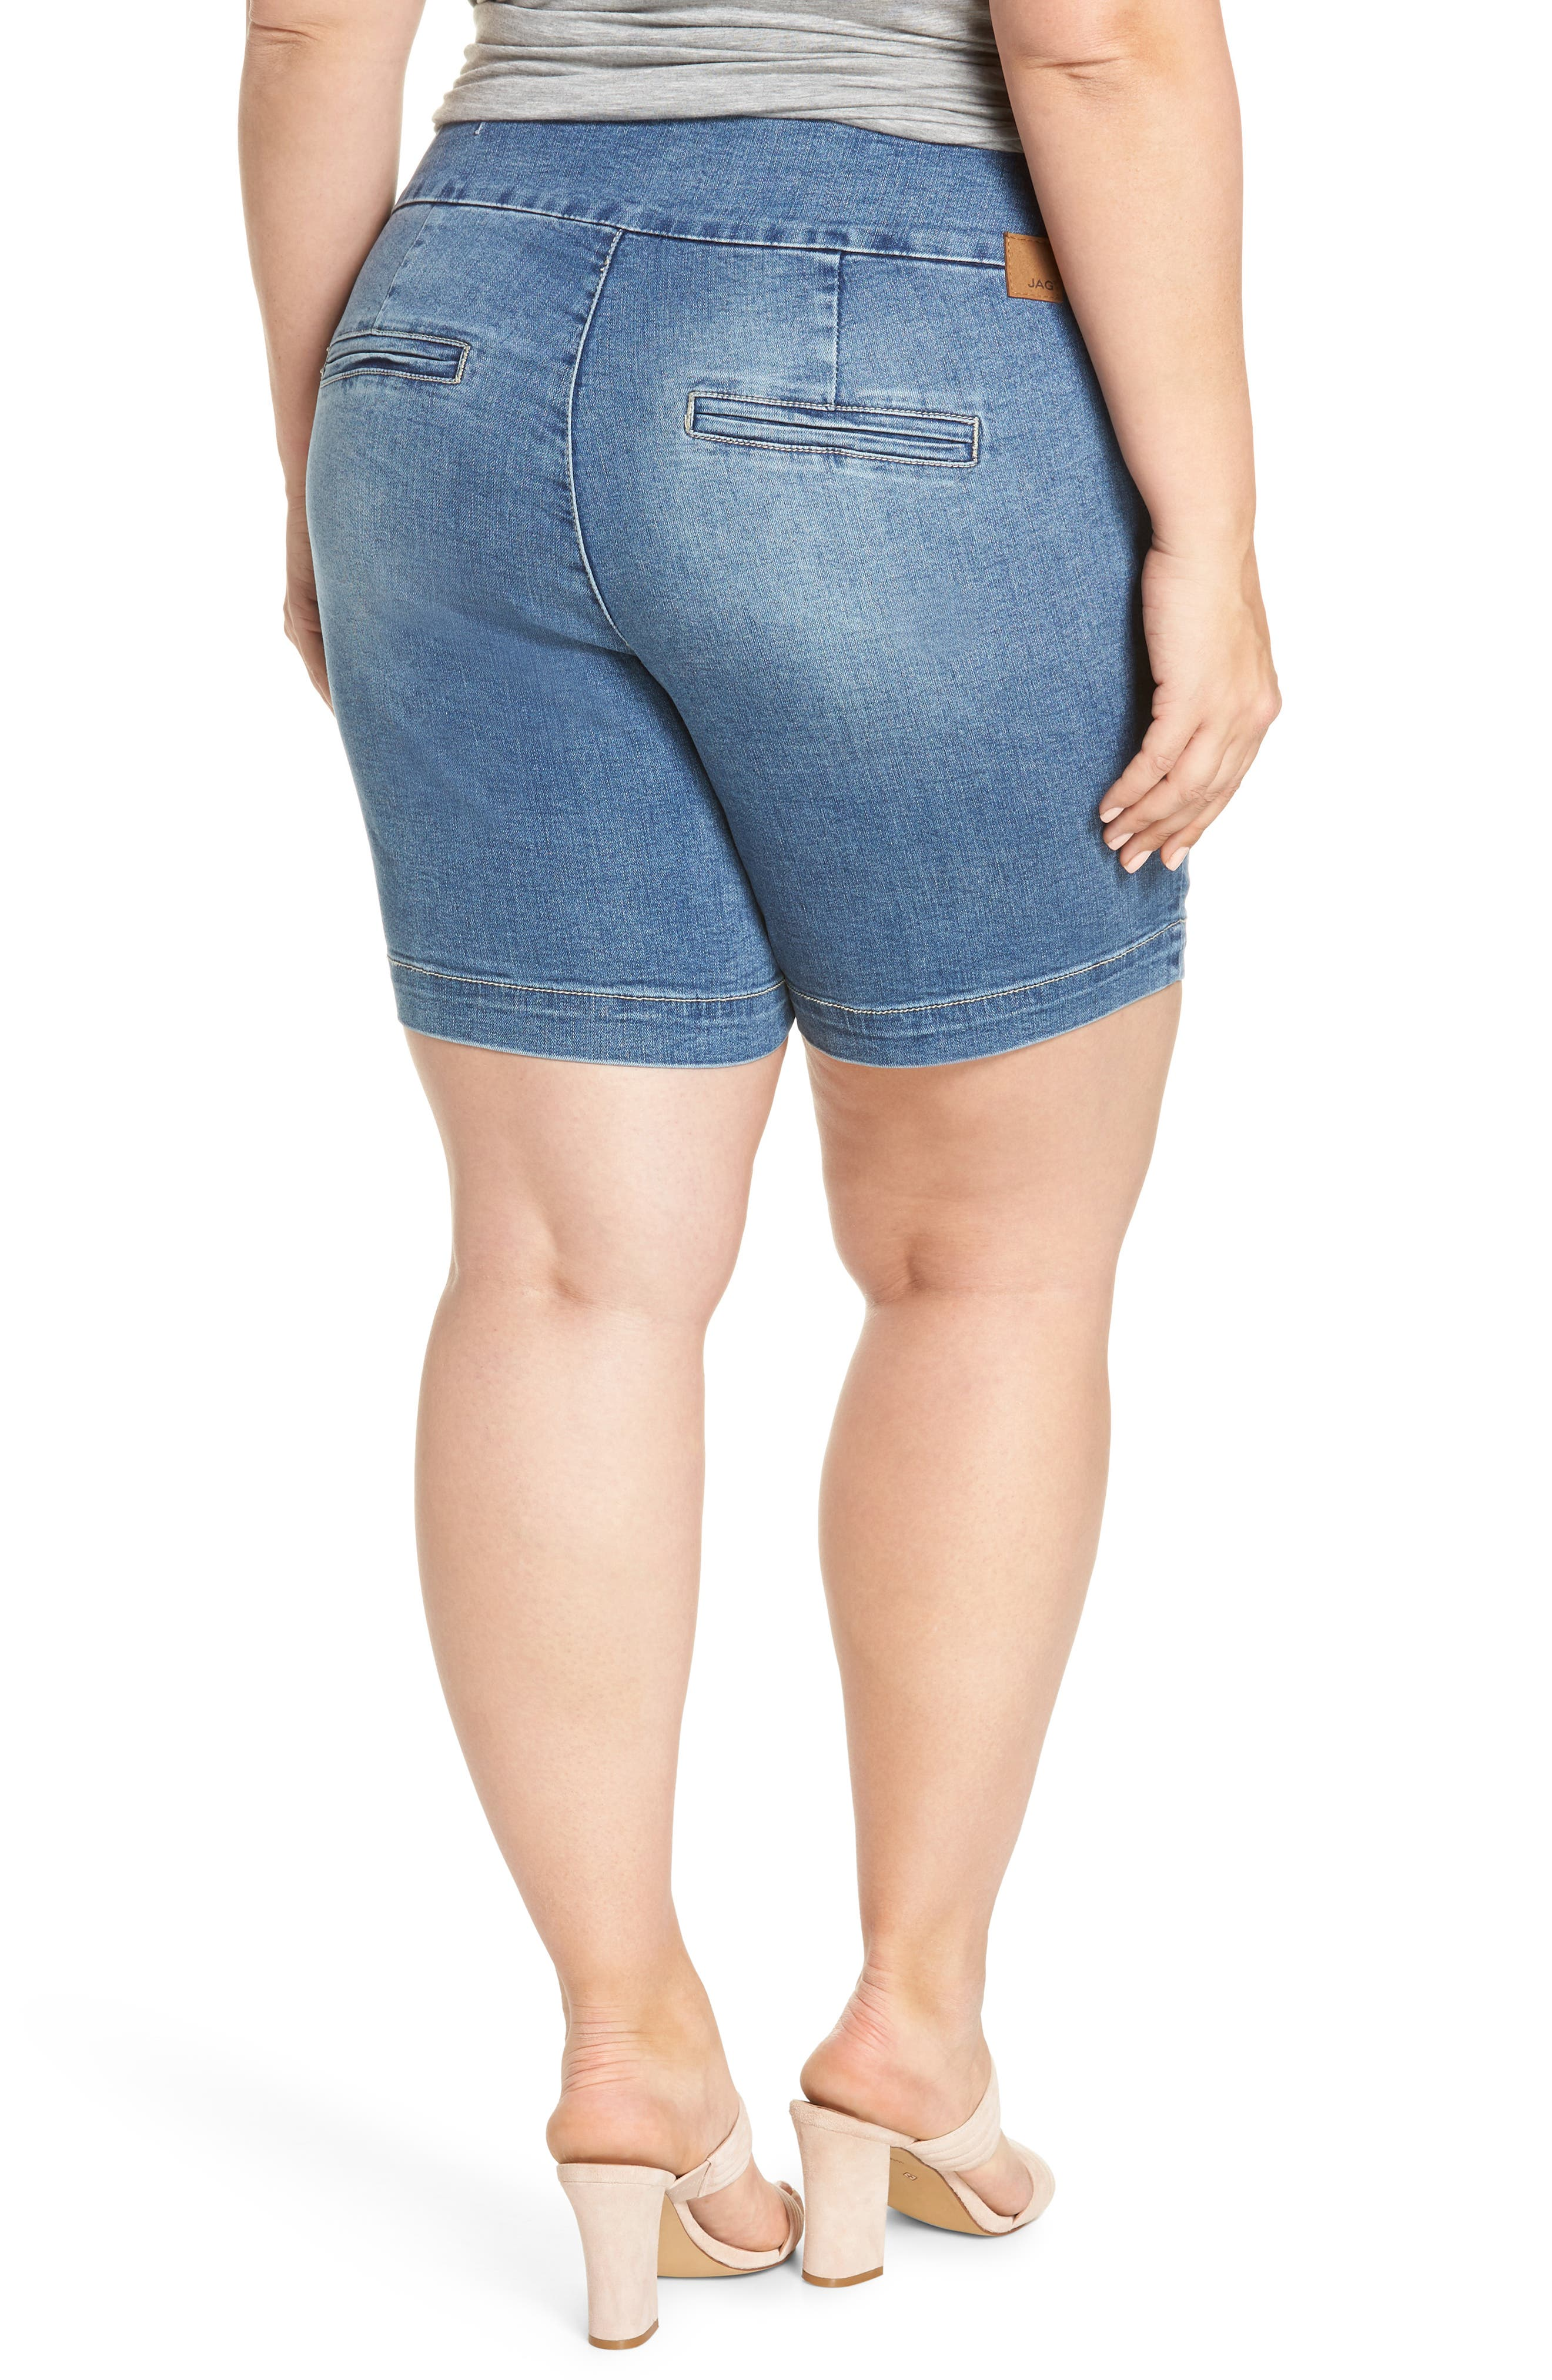 JAG JEANS,                             Ainsley Pull-On Stretch Denim Shorts,                             Alternate thumbnail 2, color,                             420